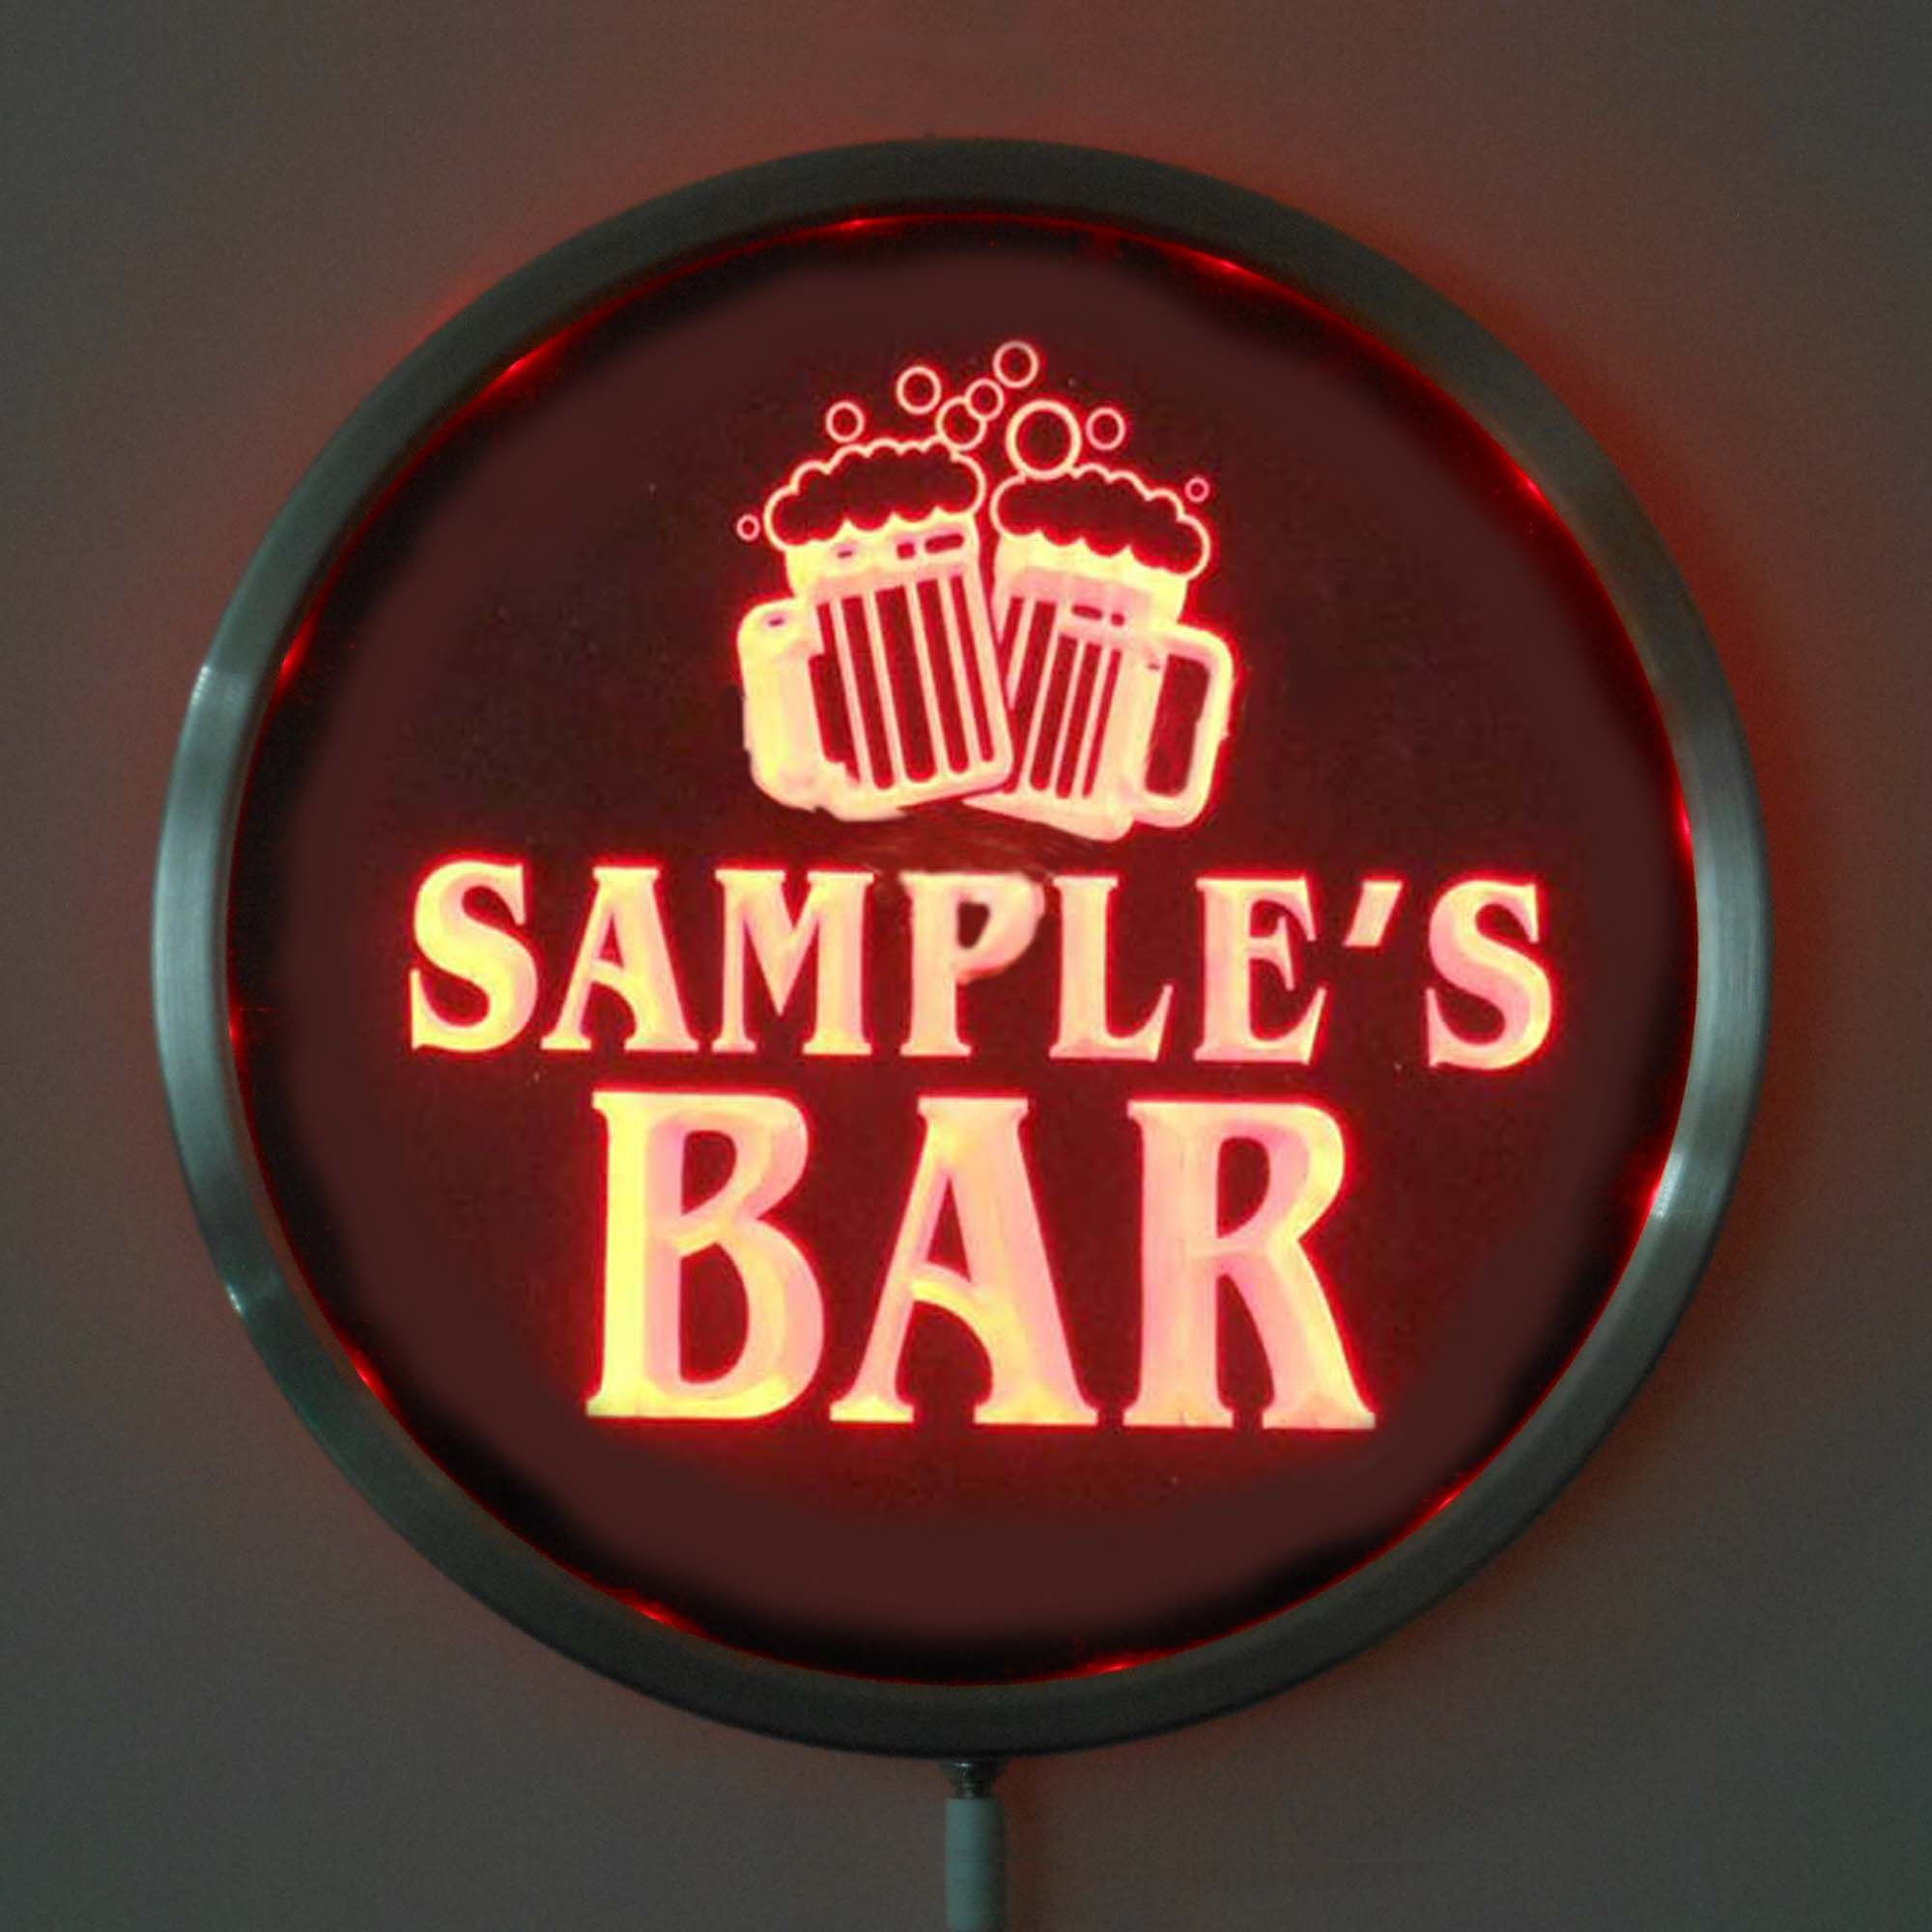 rs-w-tm Custom LED Neon Round Signs 25cm/ 10 Inch - Personalized BAR Cheers Beer Sign RGB Multi-Color Remote Wireless Control